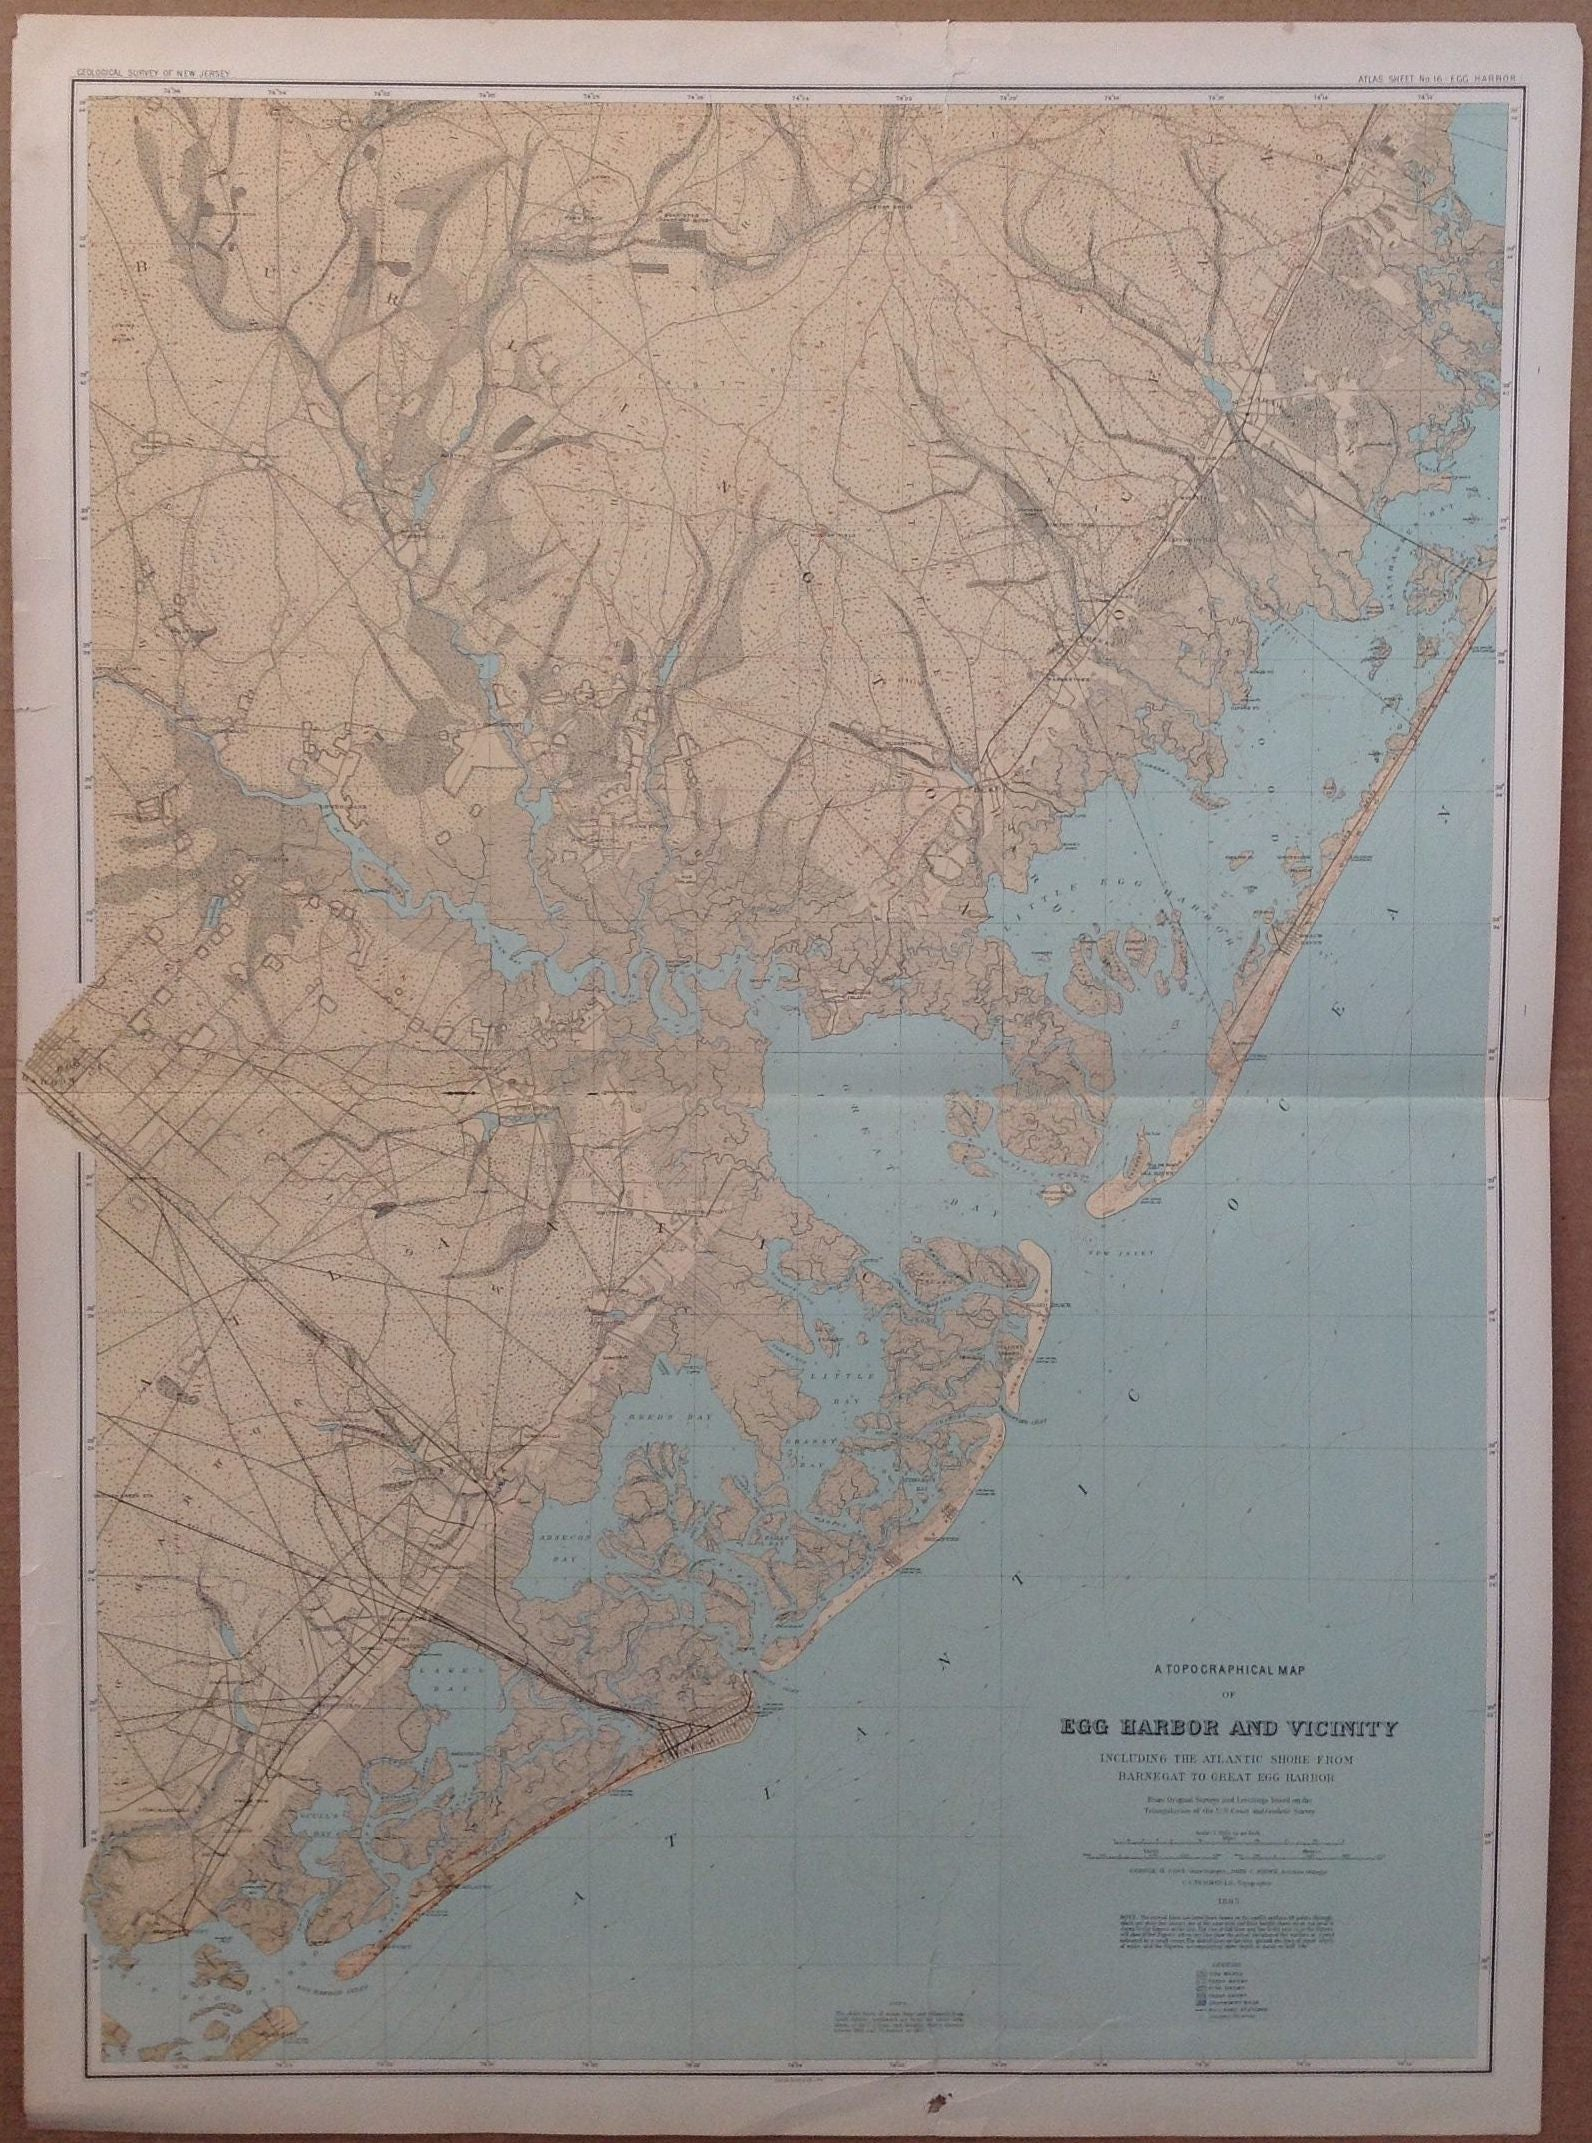 A Topographical Map of Egg Harbor and Vicinity